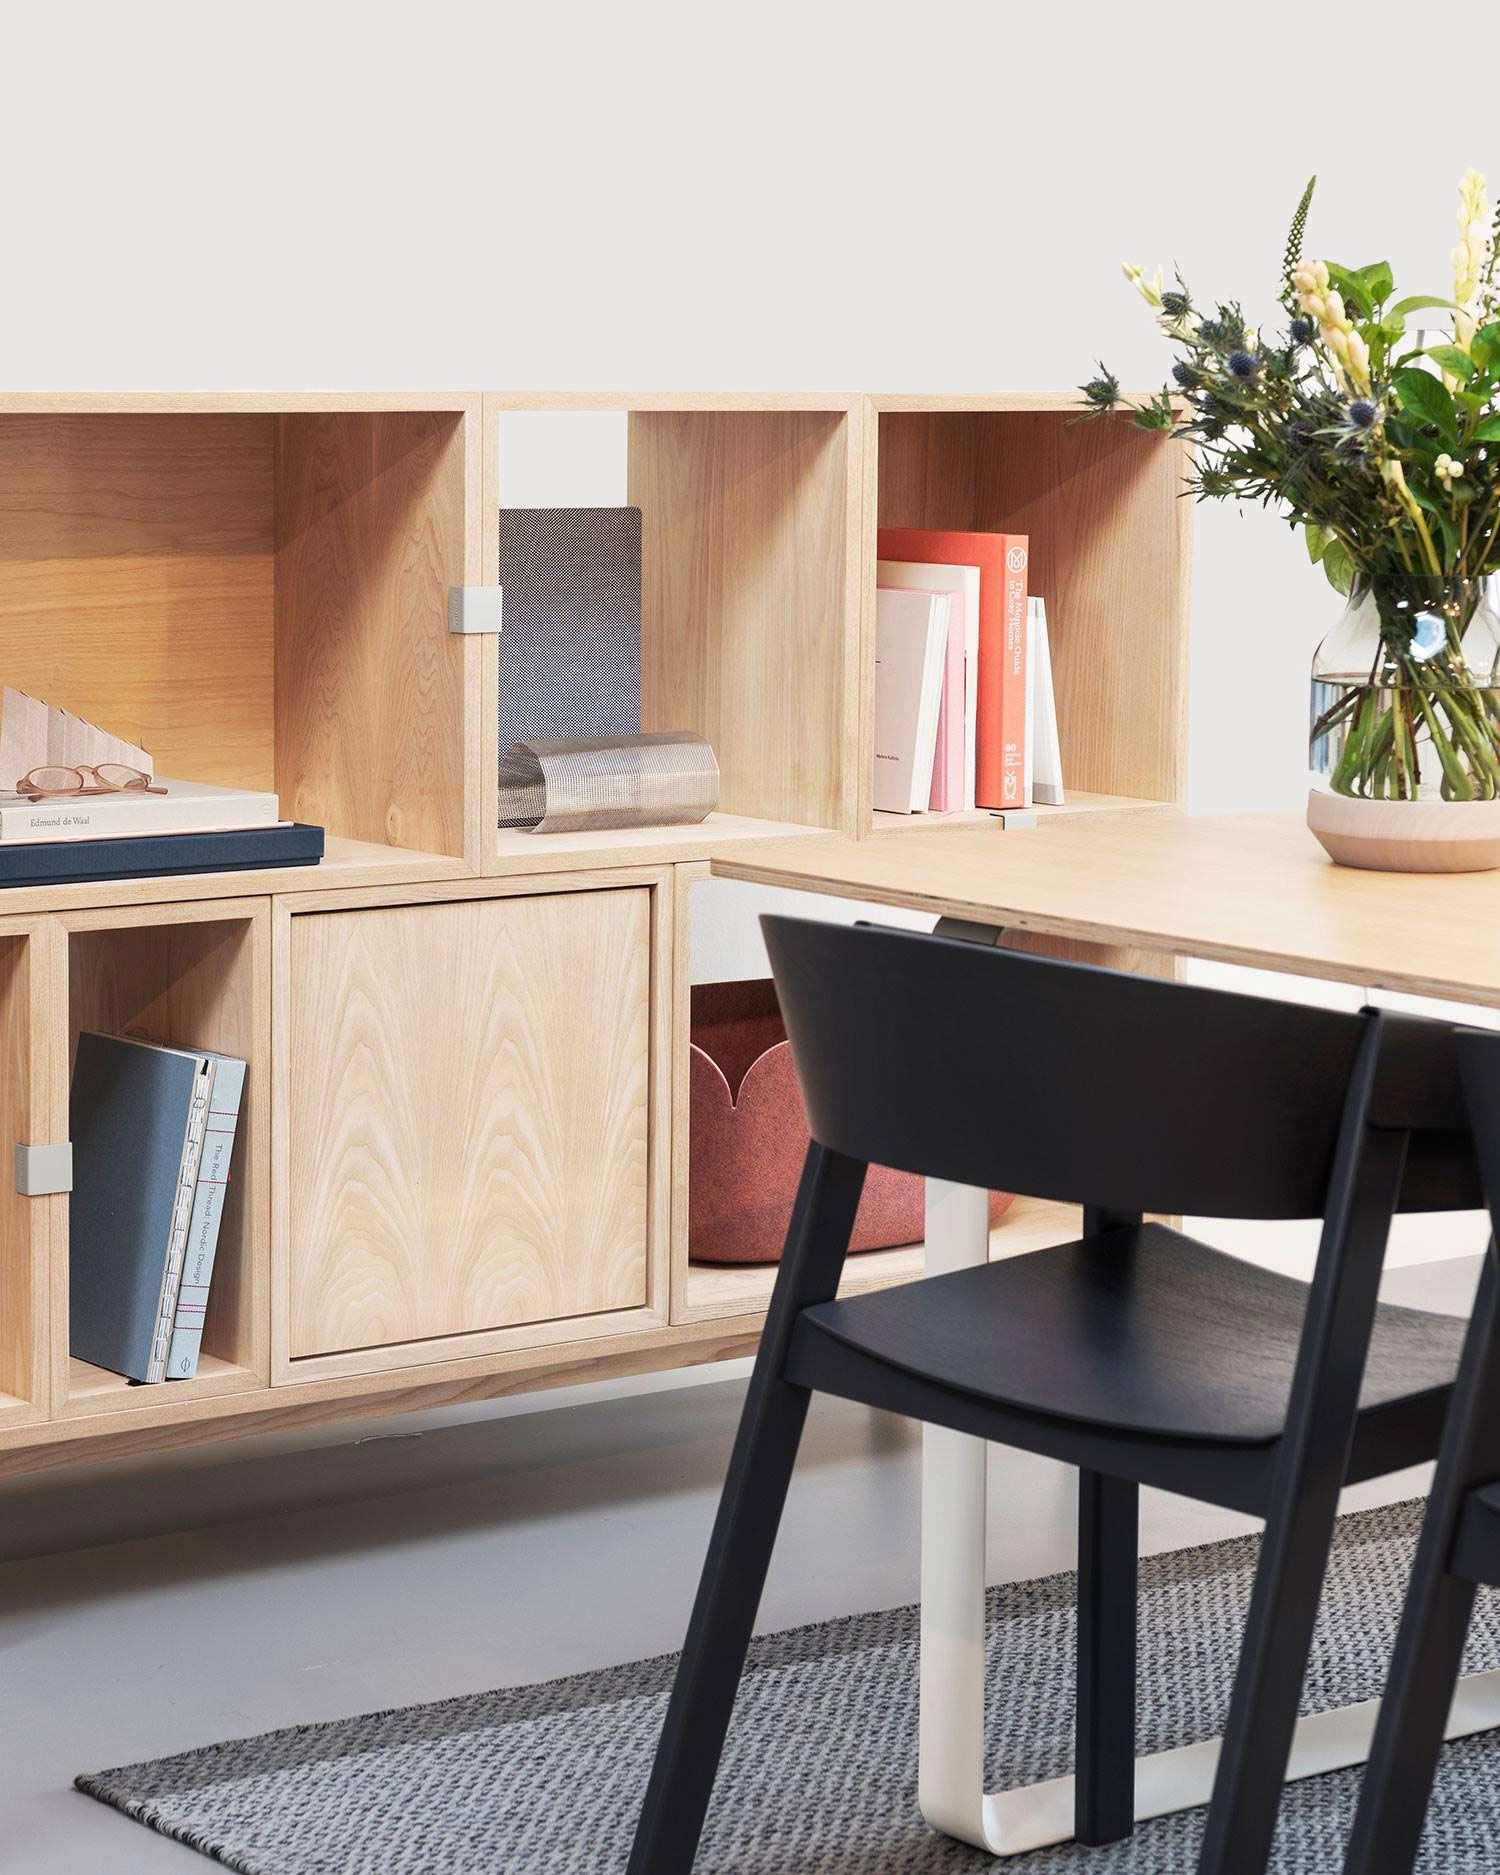 Muuto Stacked Kast Muuto Stacked Kast With Muuto Stacked